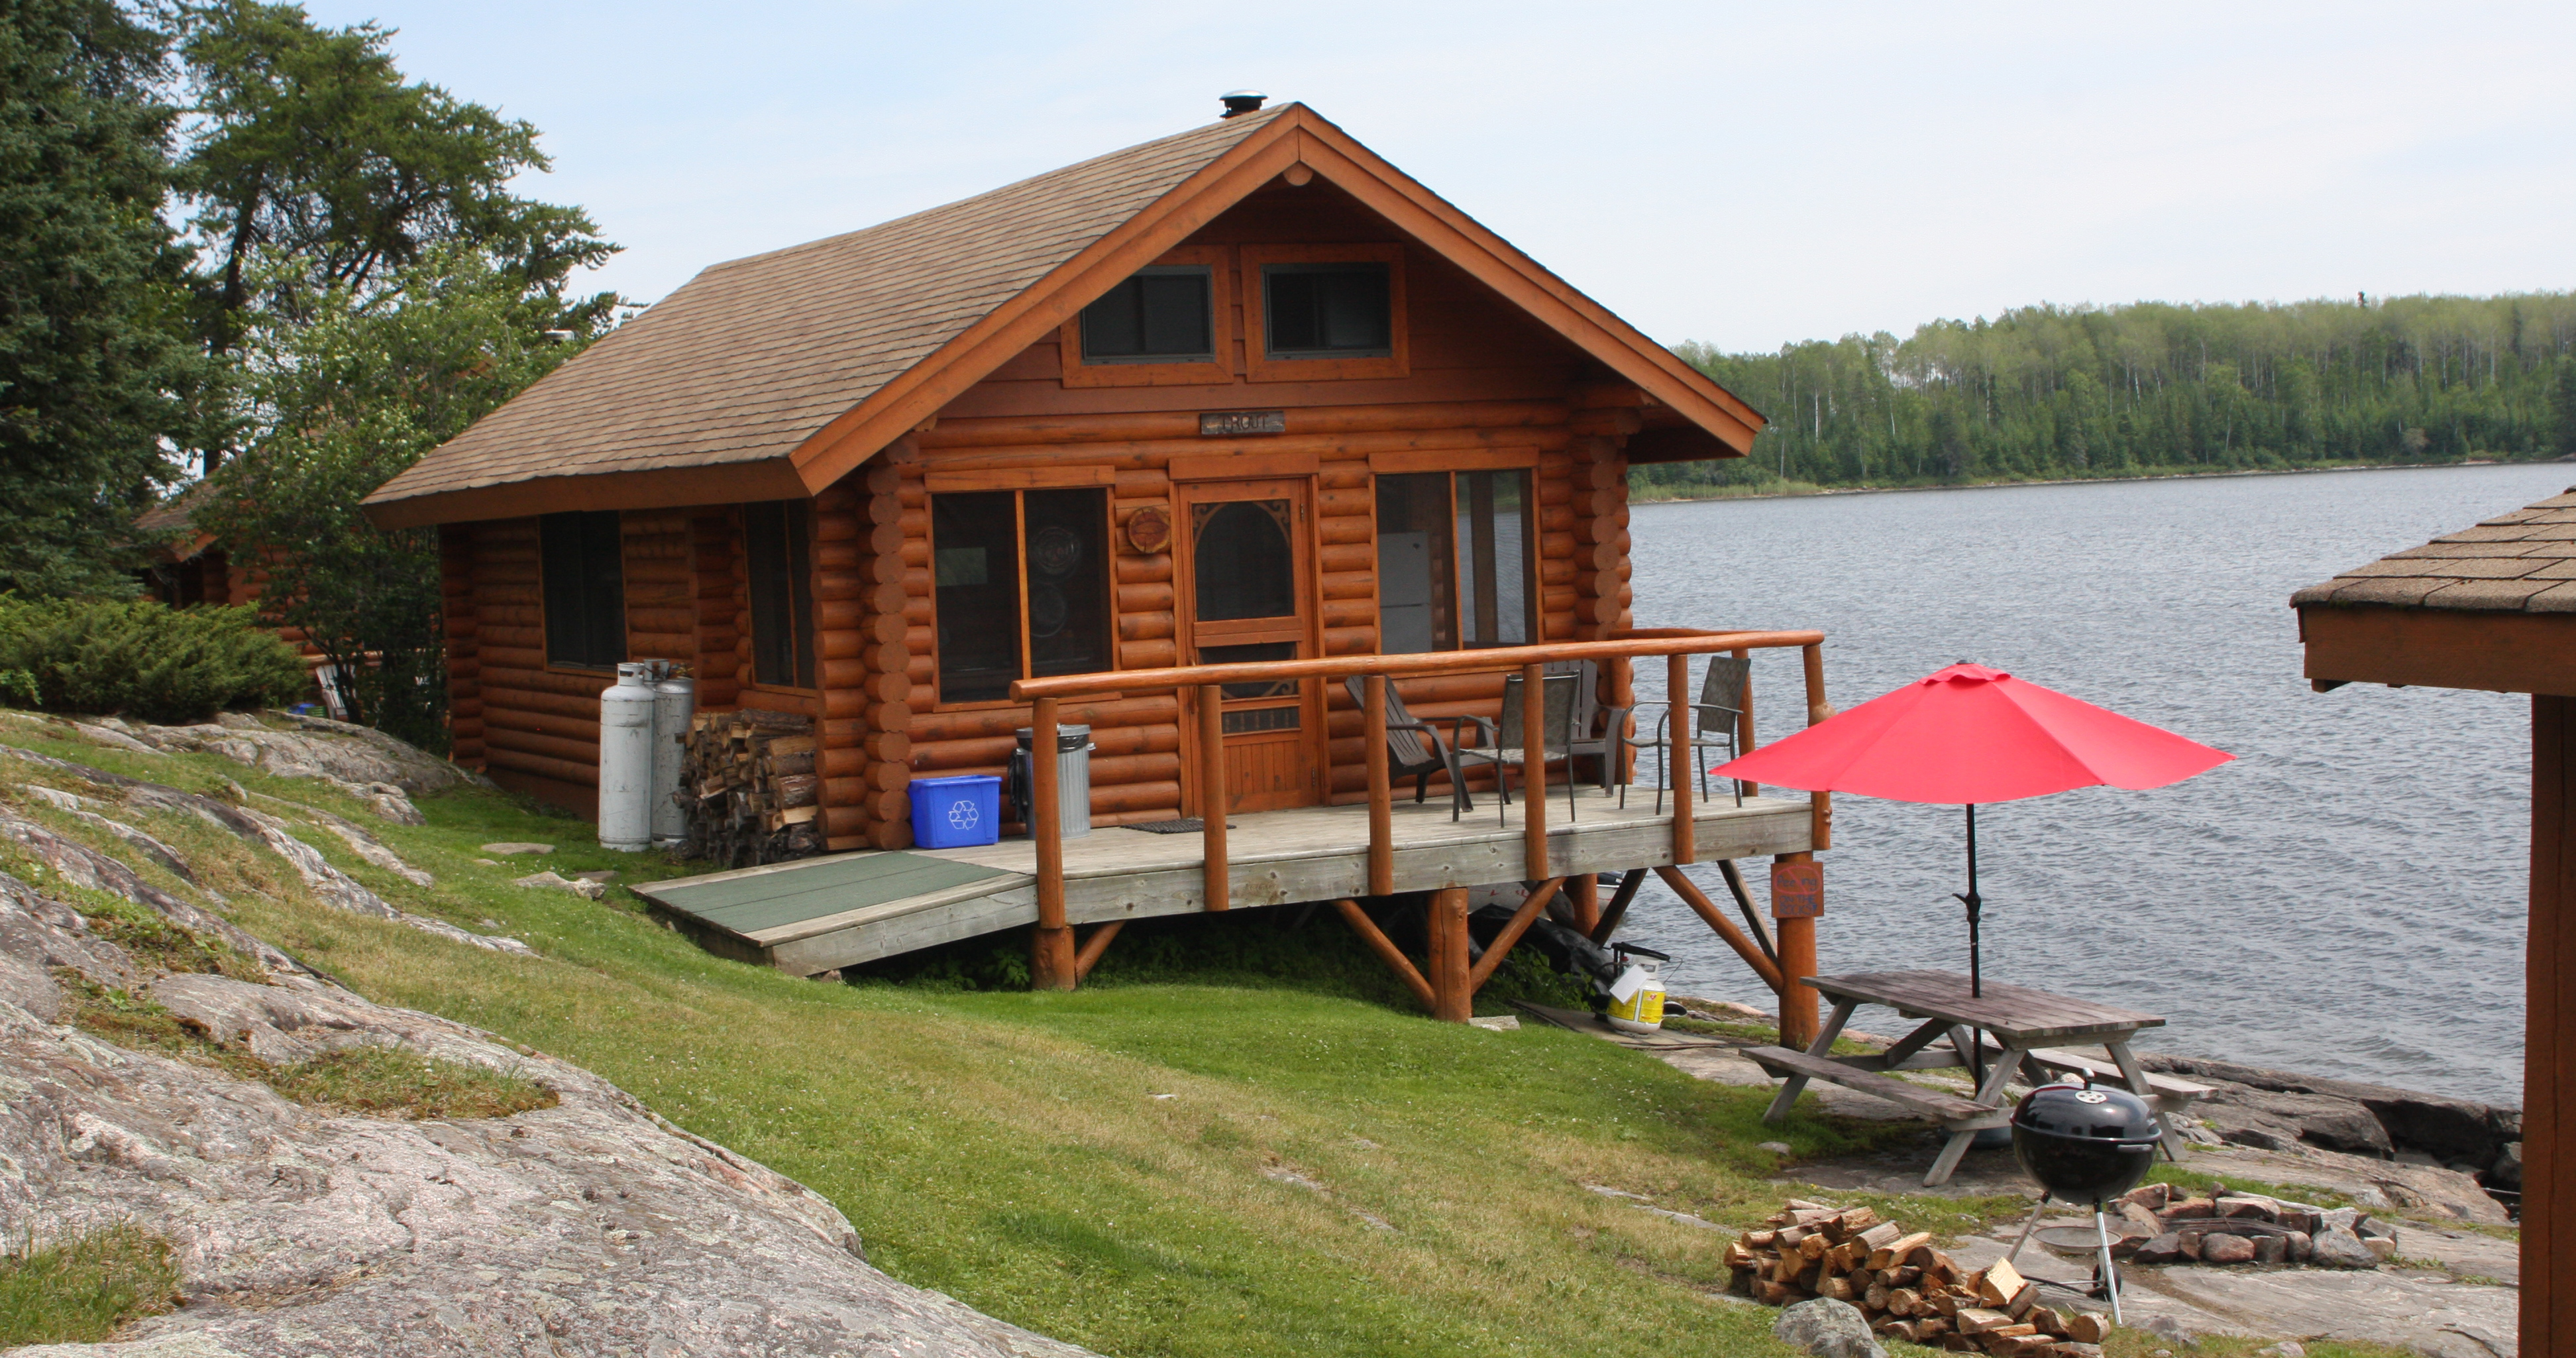 online ontario muskoka listing rentals lake birch original cottage rental rosseau on